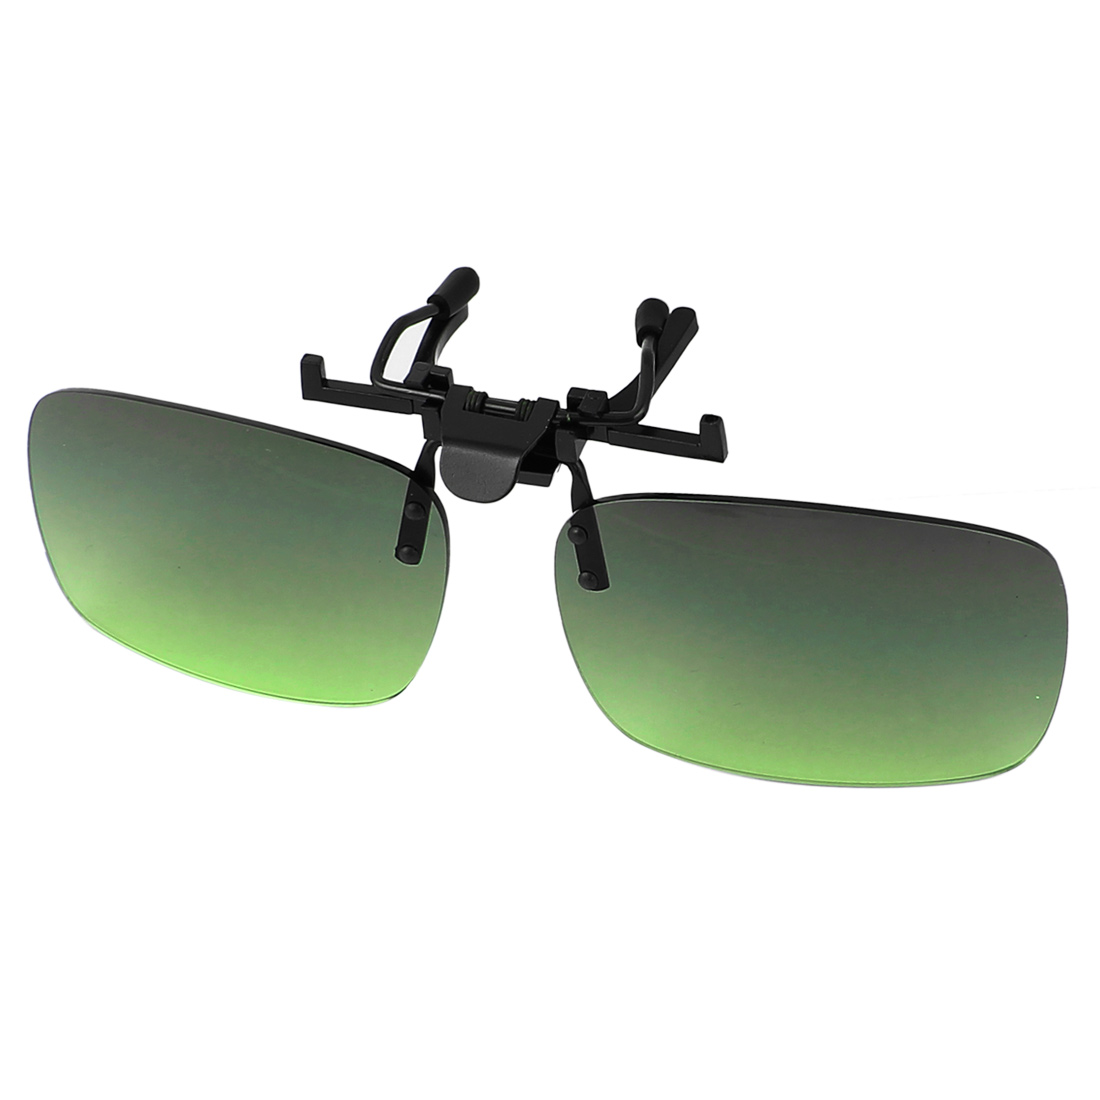 Green Lens Rimless Anti Glare Clip On Driving Sunglasses Eyeglasses 132 x 39mm